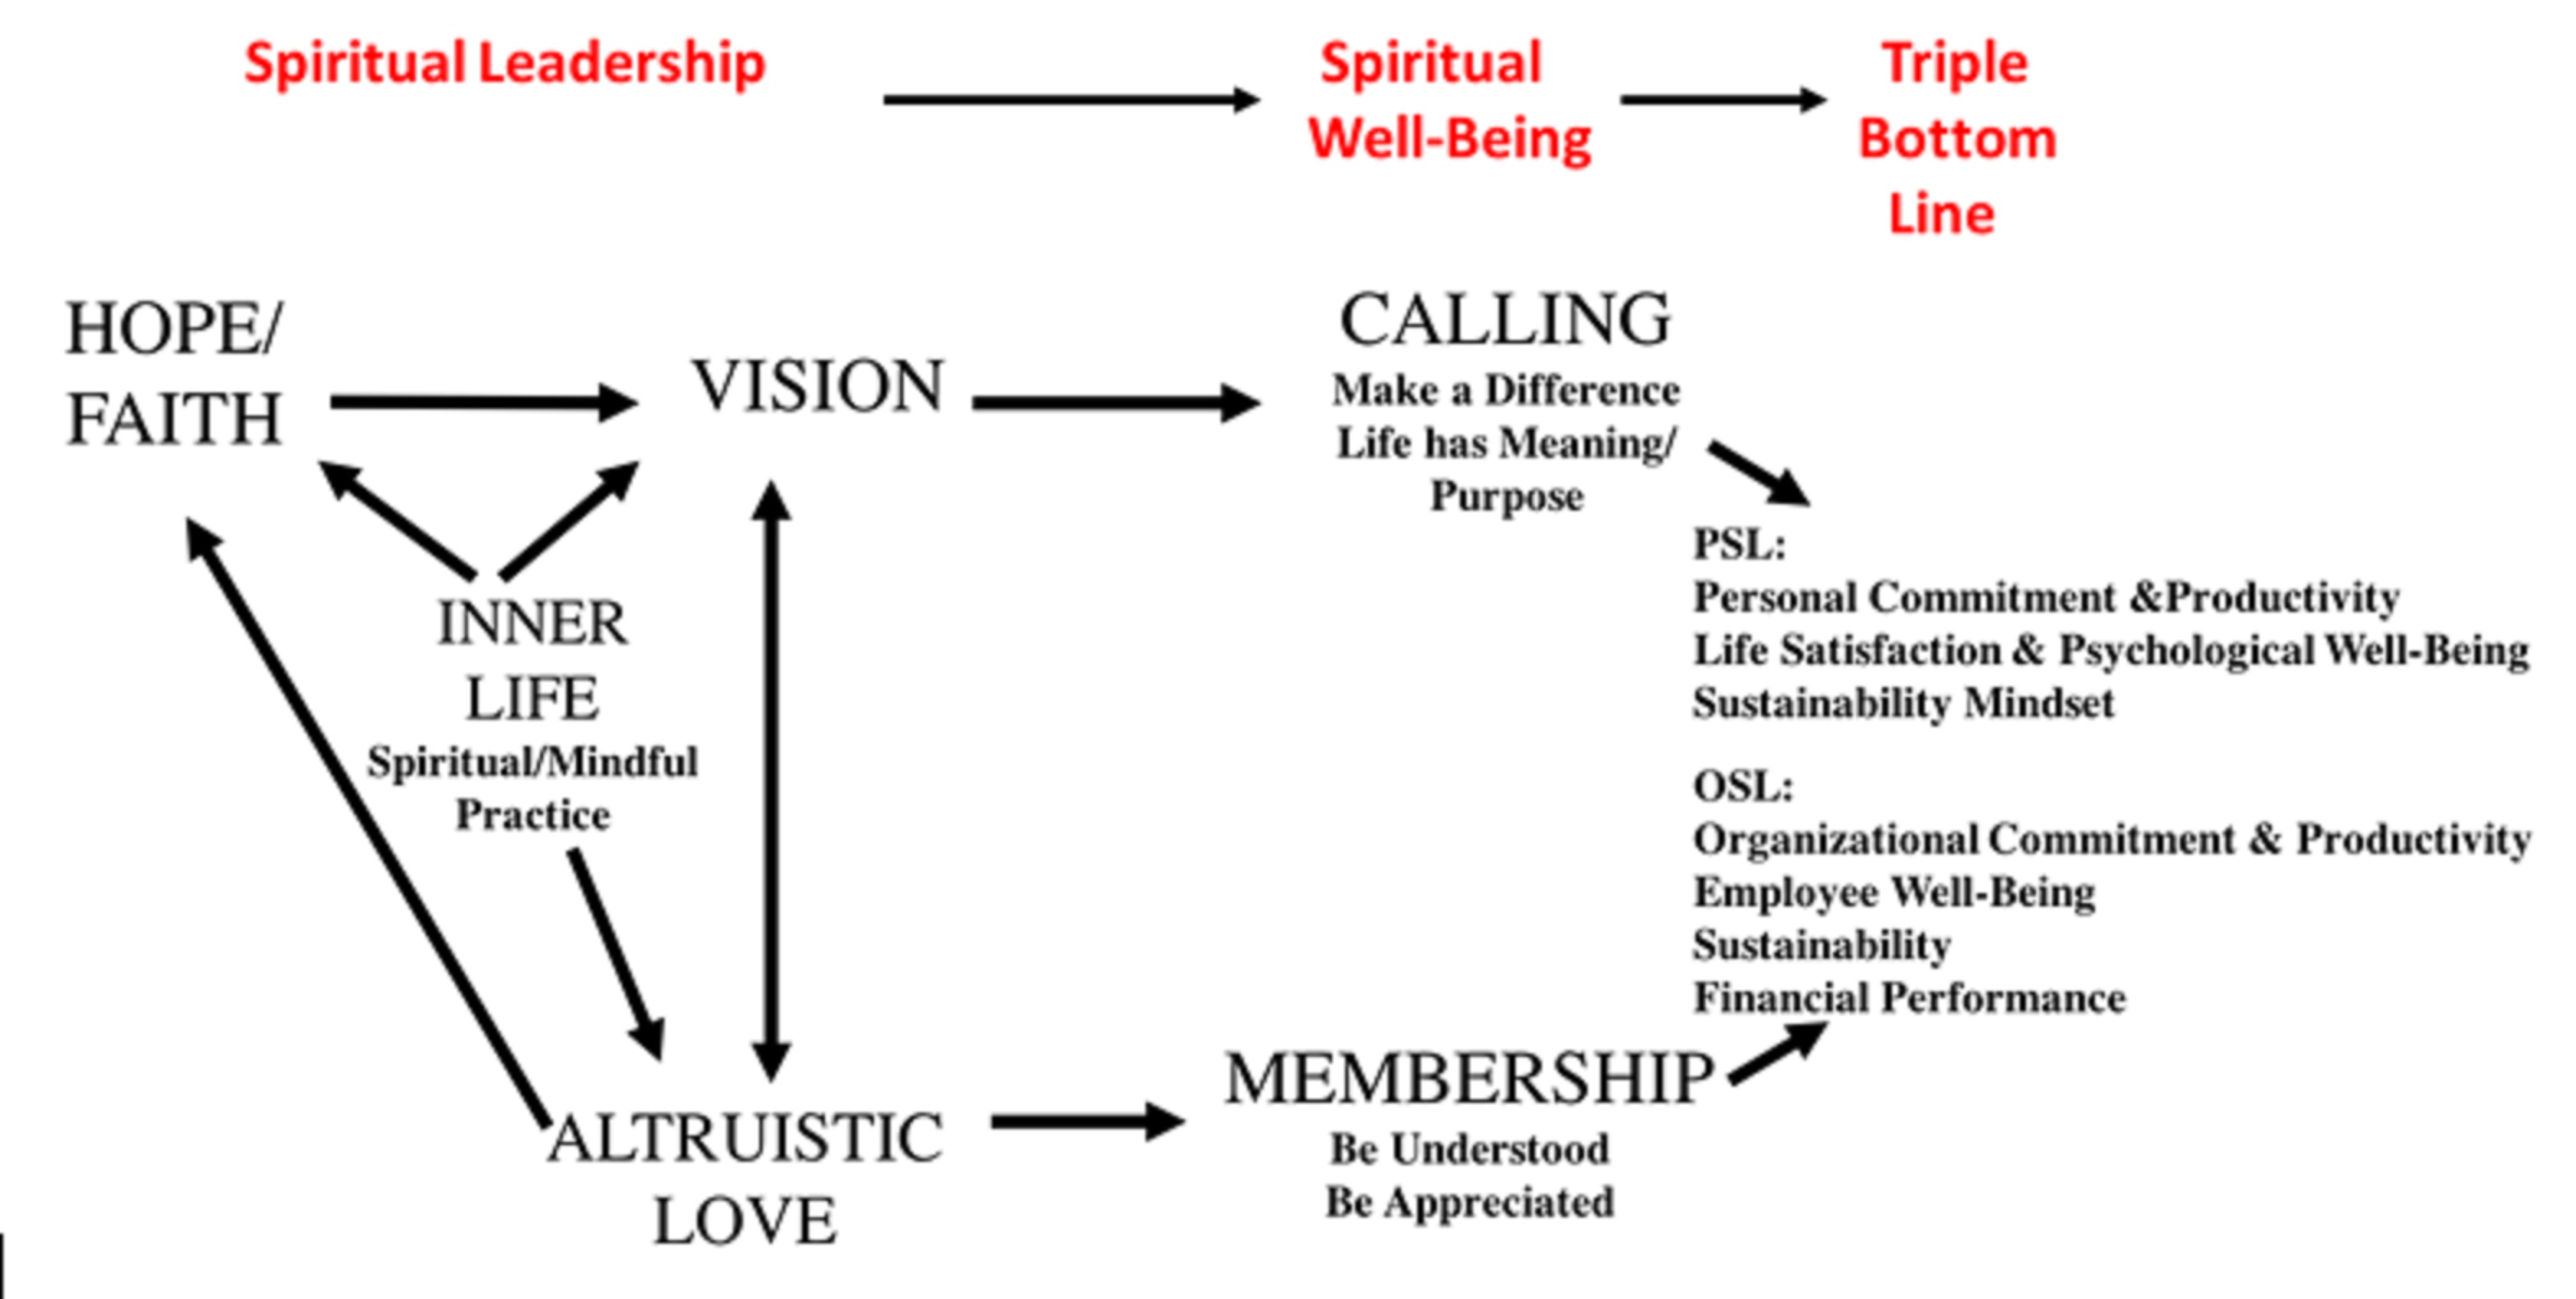 personal and organizational spiritual leadership model, louis w fry, act consulting